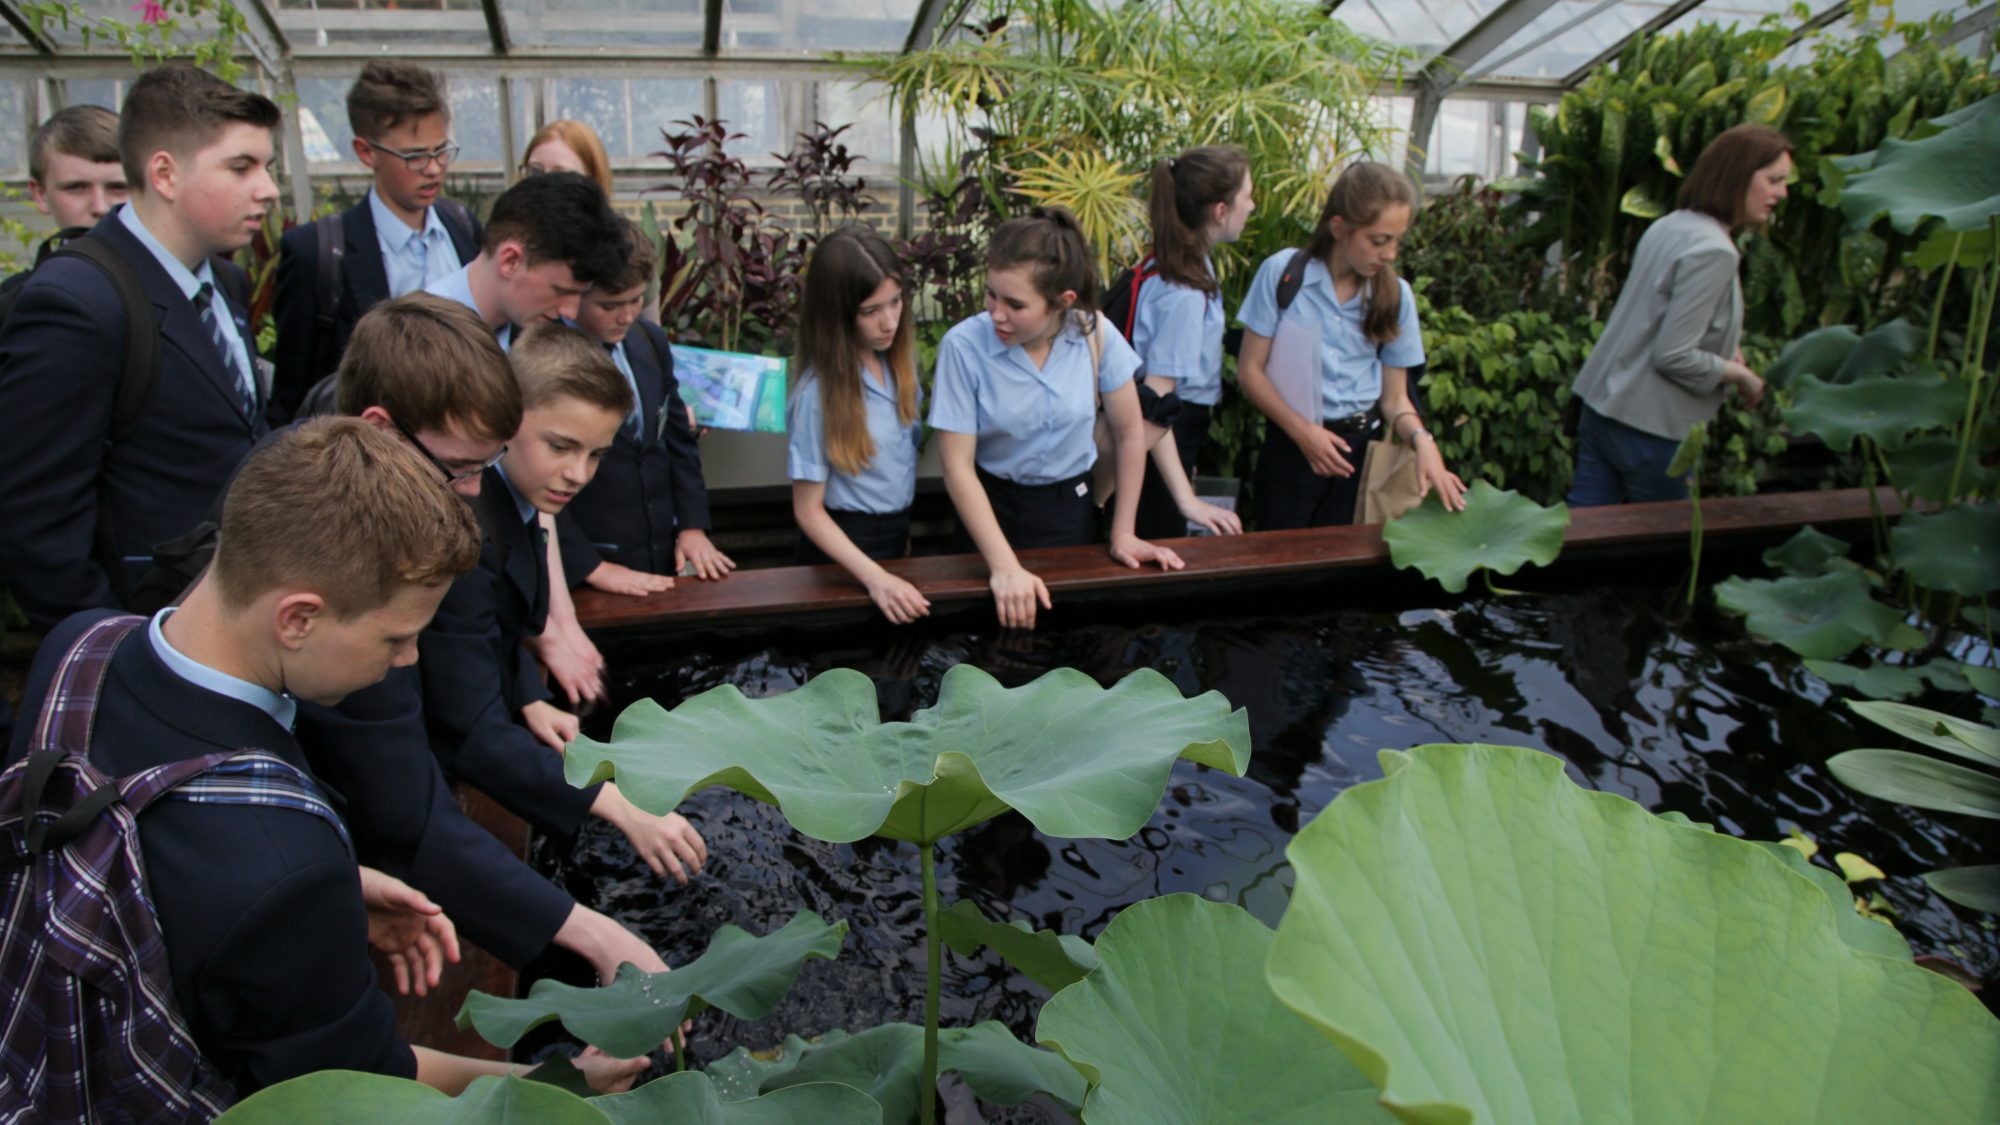 Students studying the Sacred Lotus, growing in tropical glasshouse at Cambridge University Botanic Garden.